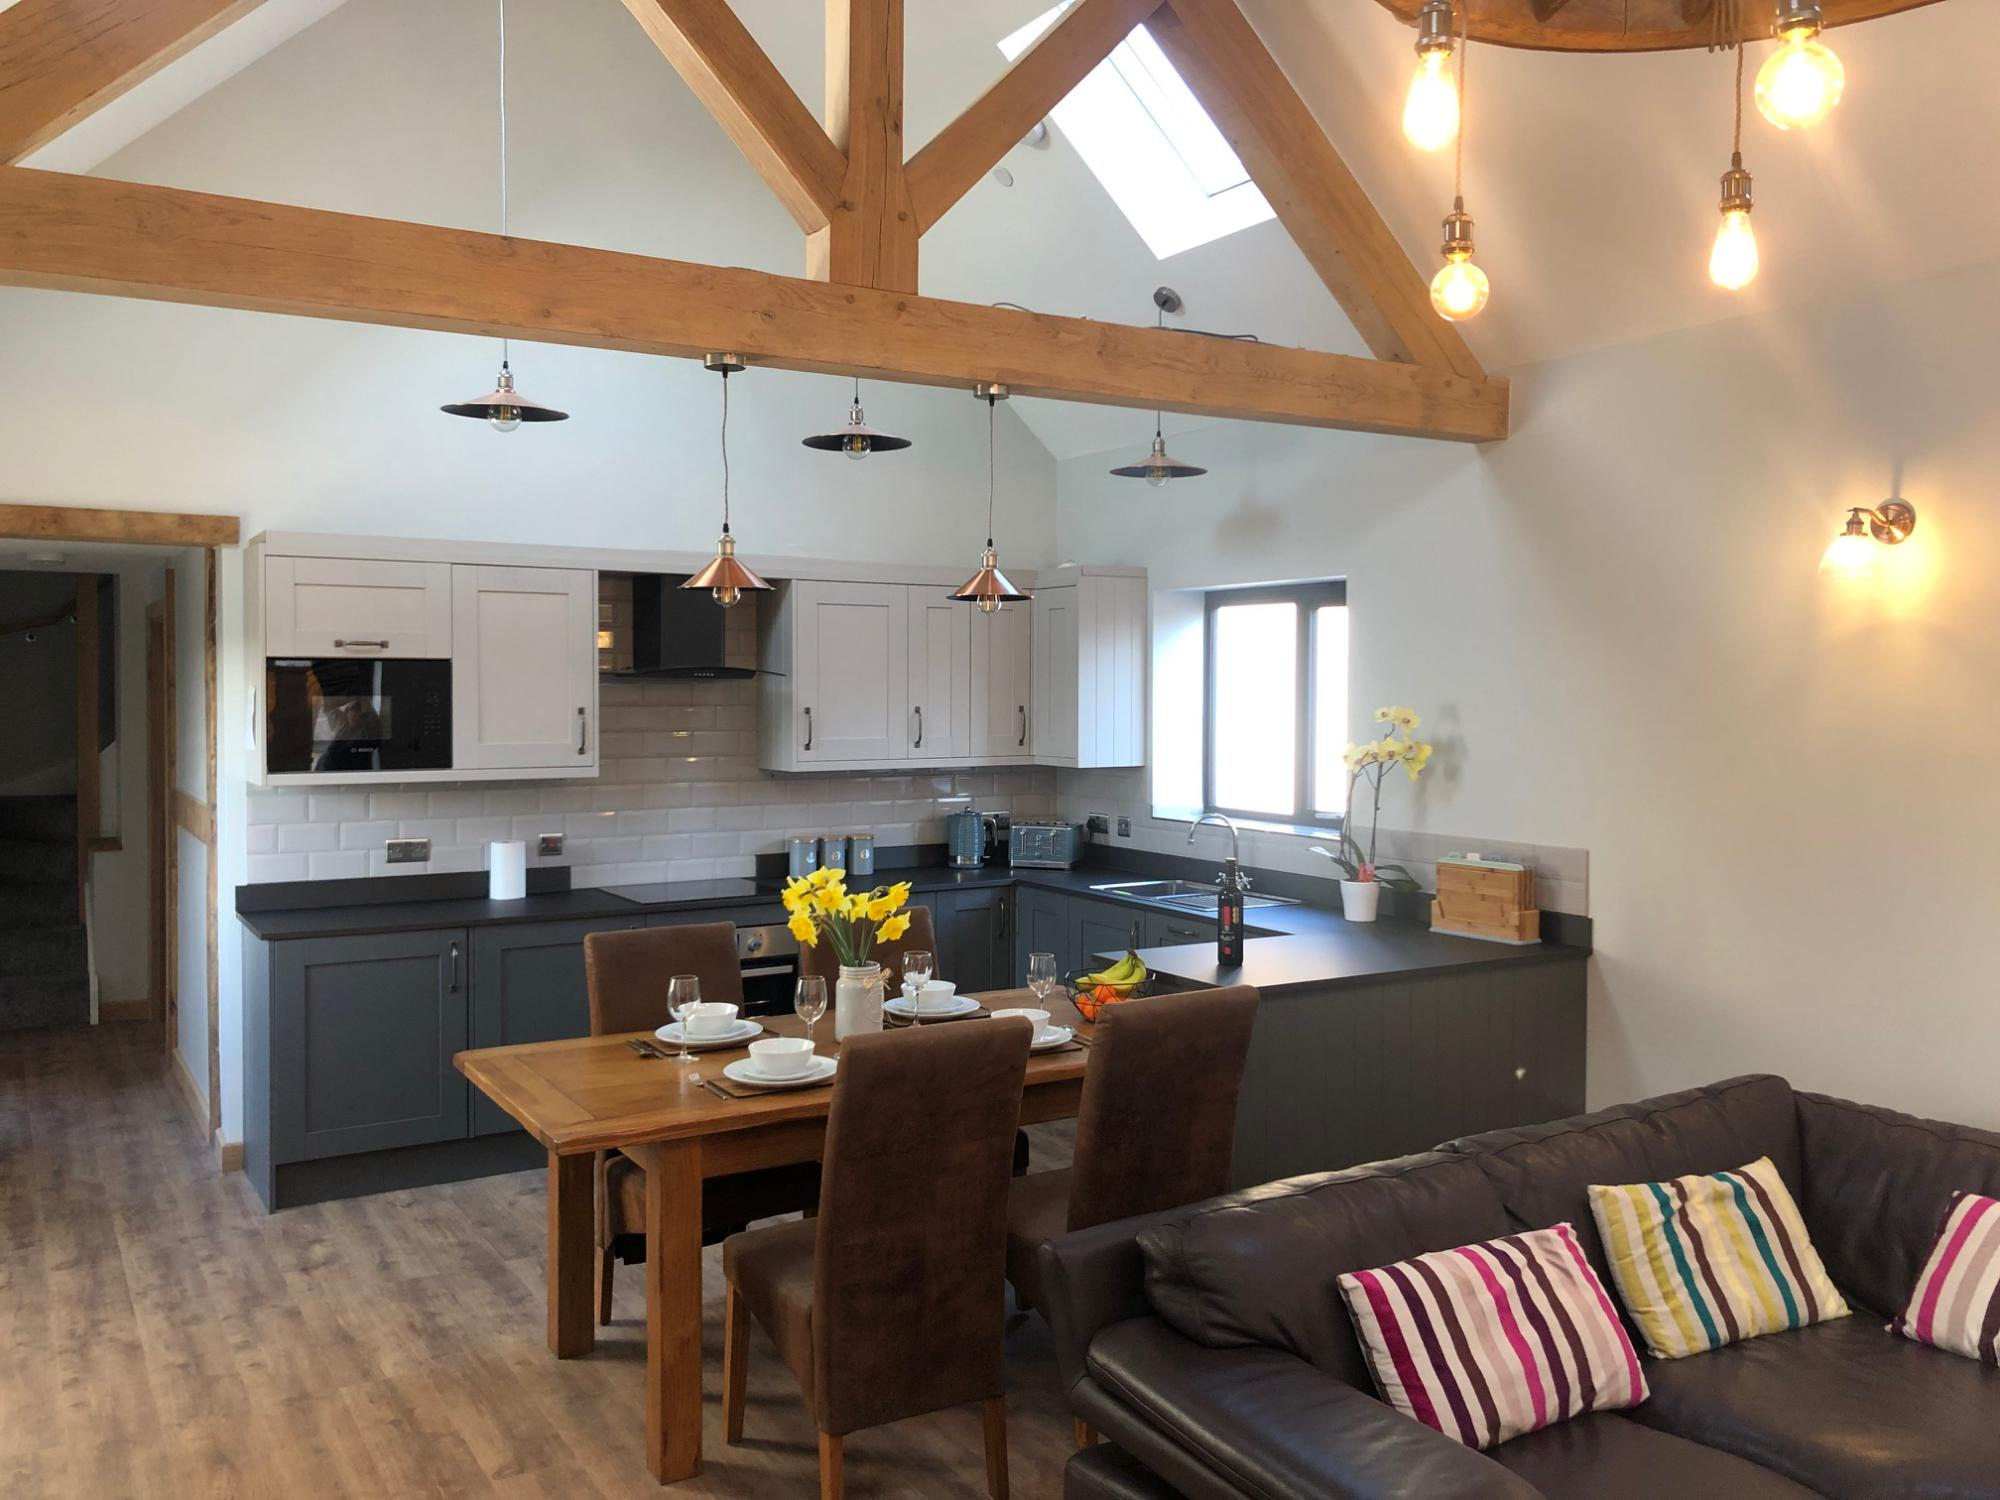 Self-Catering in North Wales holidays at Cool Places